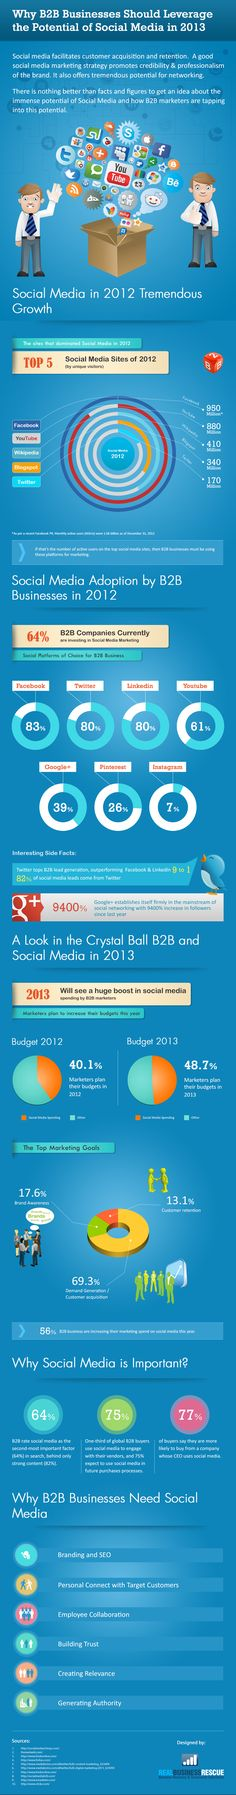 Why B2B Brands Must Invest In Social Media In 2013 [INFOGRAPHIC]